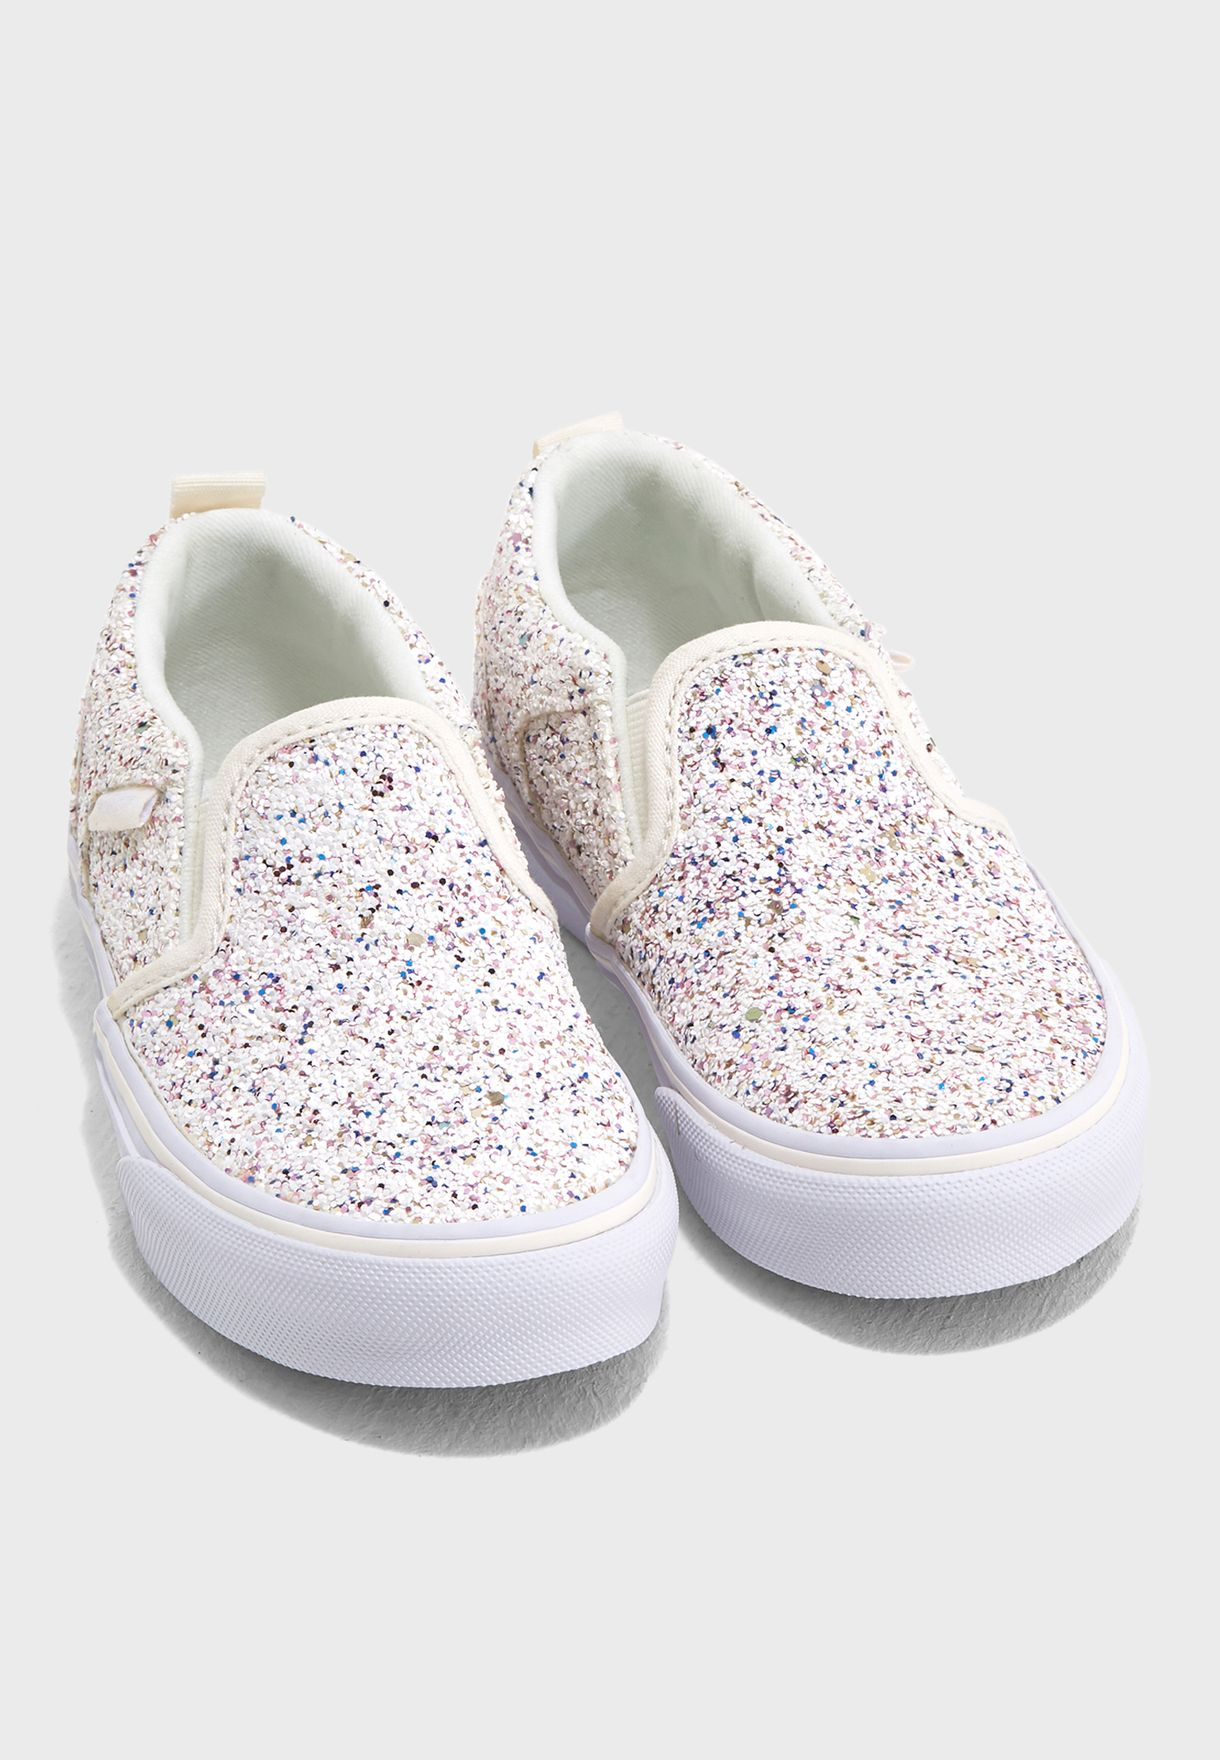 d2e3ff09d5b3df Shop Vans white Kids Asher Glitter Slip Ons 8DSQ5D2 for Kids in ...